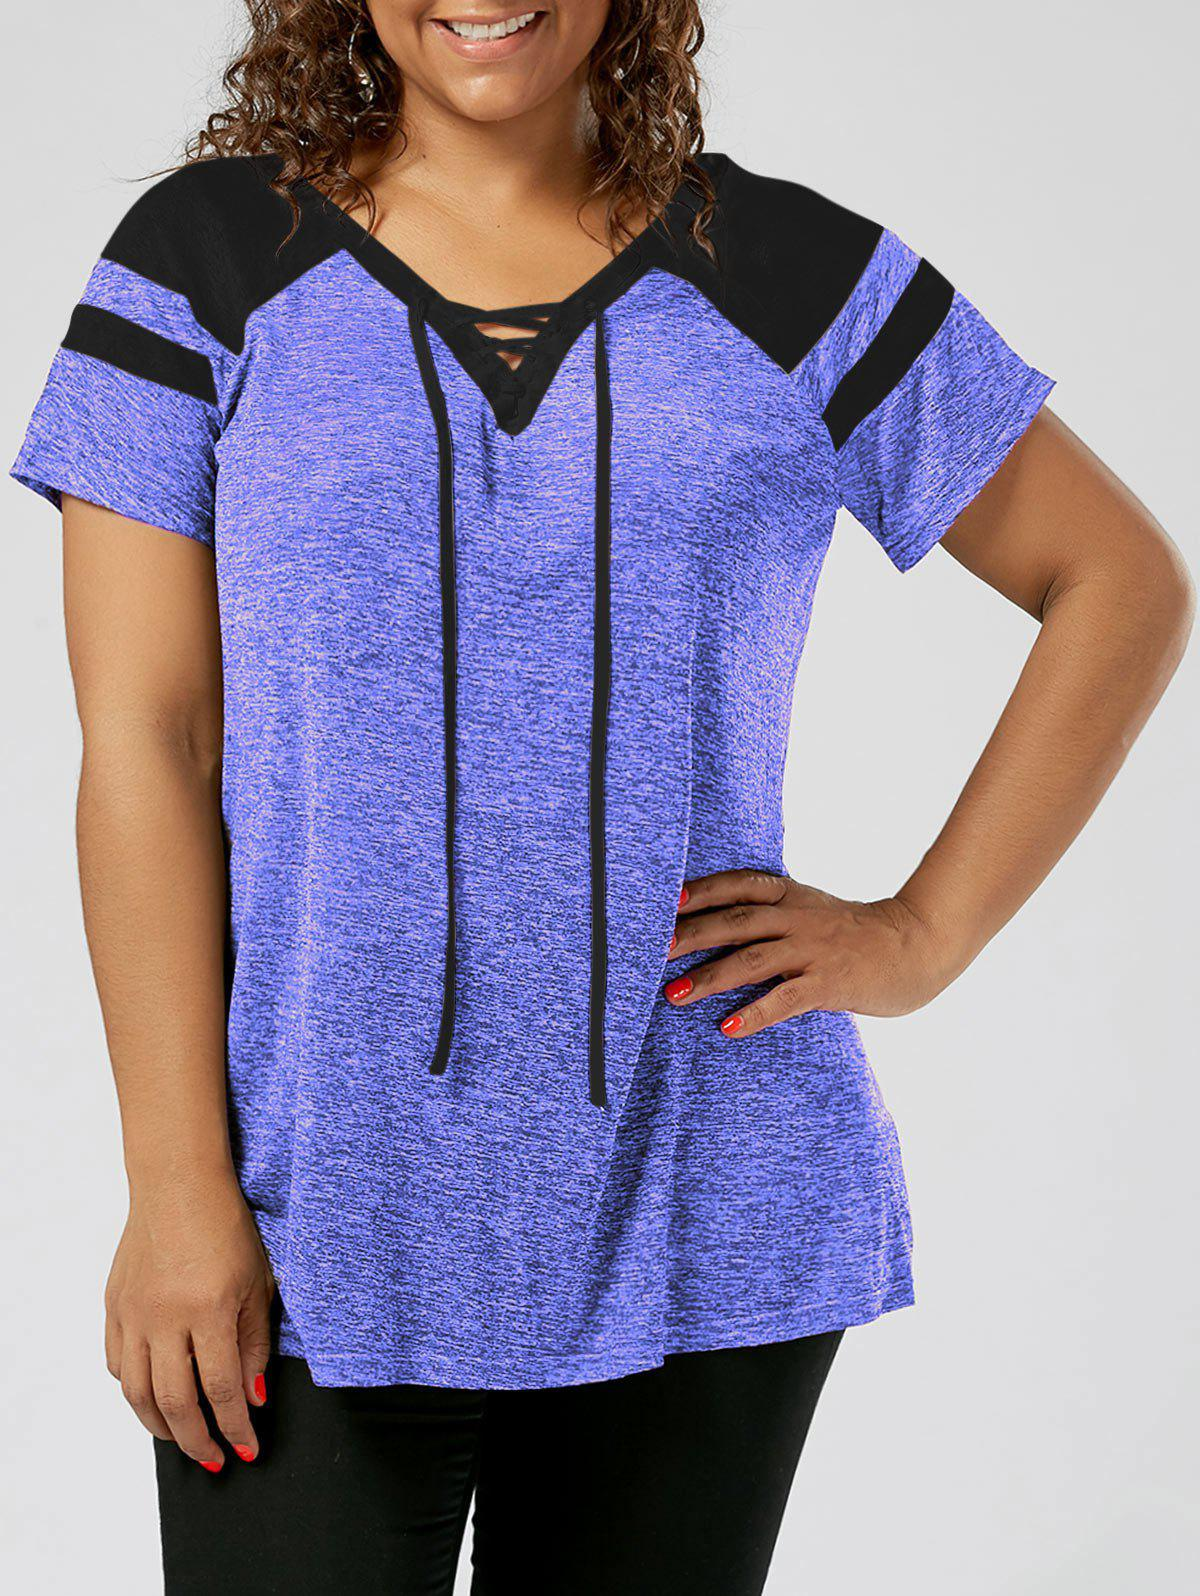 Plus Size Lace Up Raglan Sleeve TopWOMEN<br><br>Size: 4XL; Color: BLACK AND BLUE; Material: Polyester,Spandex; Shirt Length: Long; Sleeve Length: Short; Collar: V-Neck; Style: Active; Season: Summer; Pattern Type: Others; Weight: 0.1900kg; Package Contents: 1 x Top;